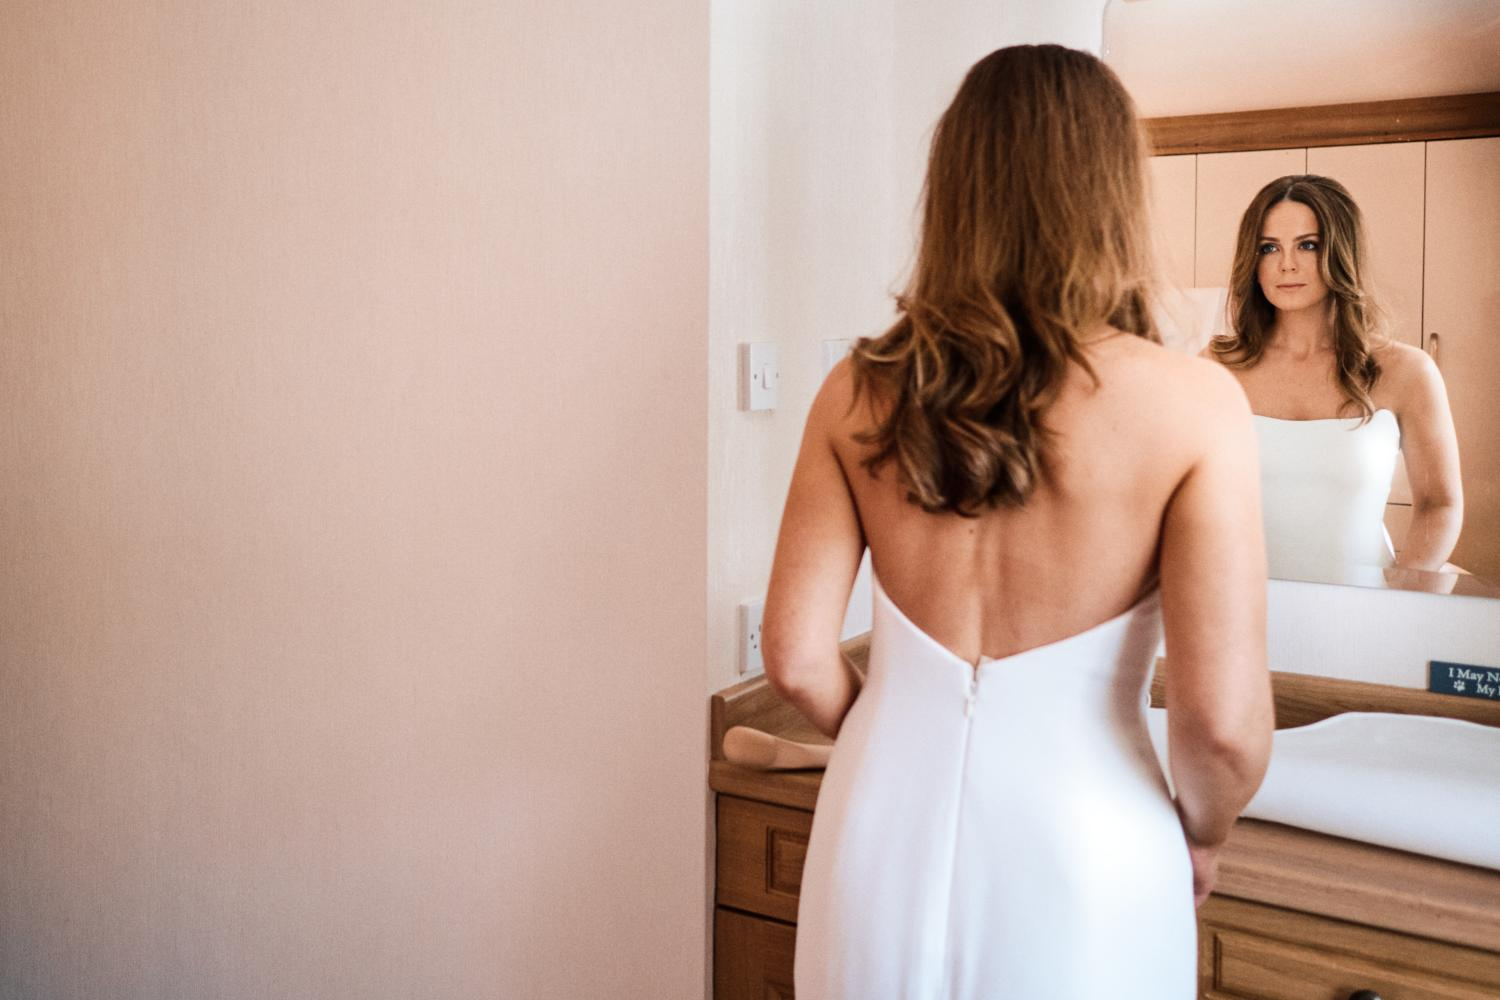 A bride in a white wedding dress, looking into the mirror